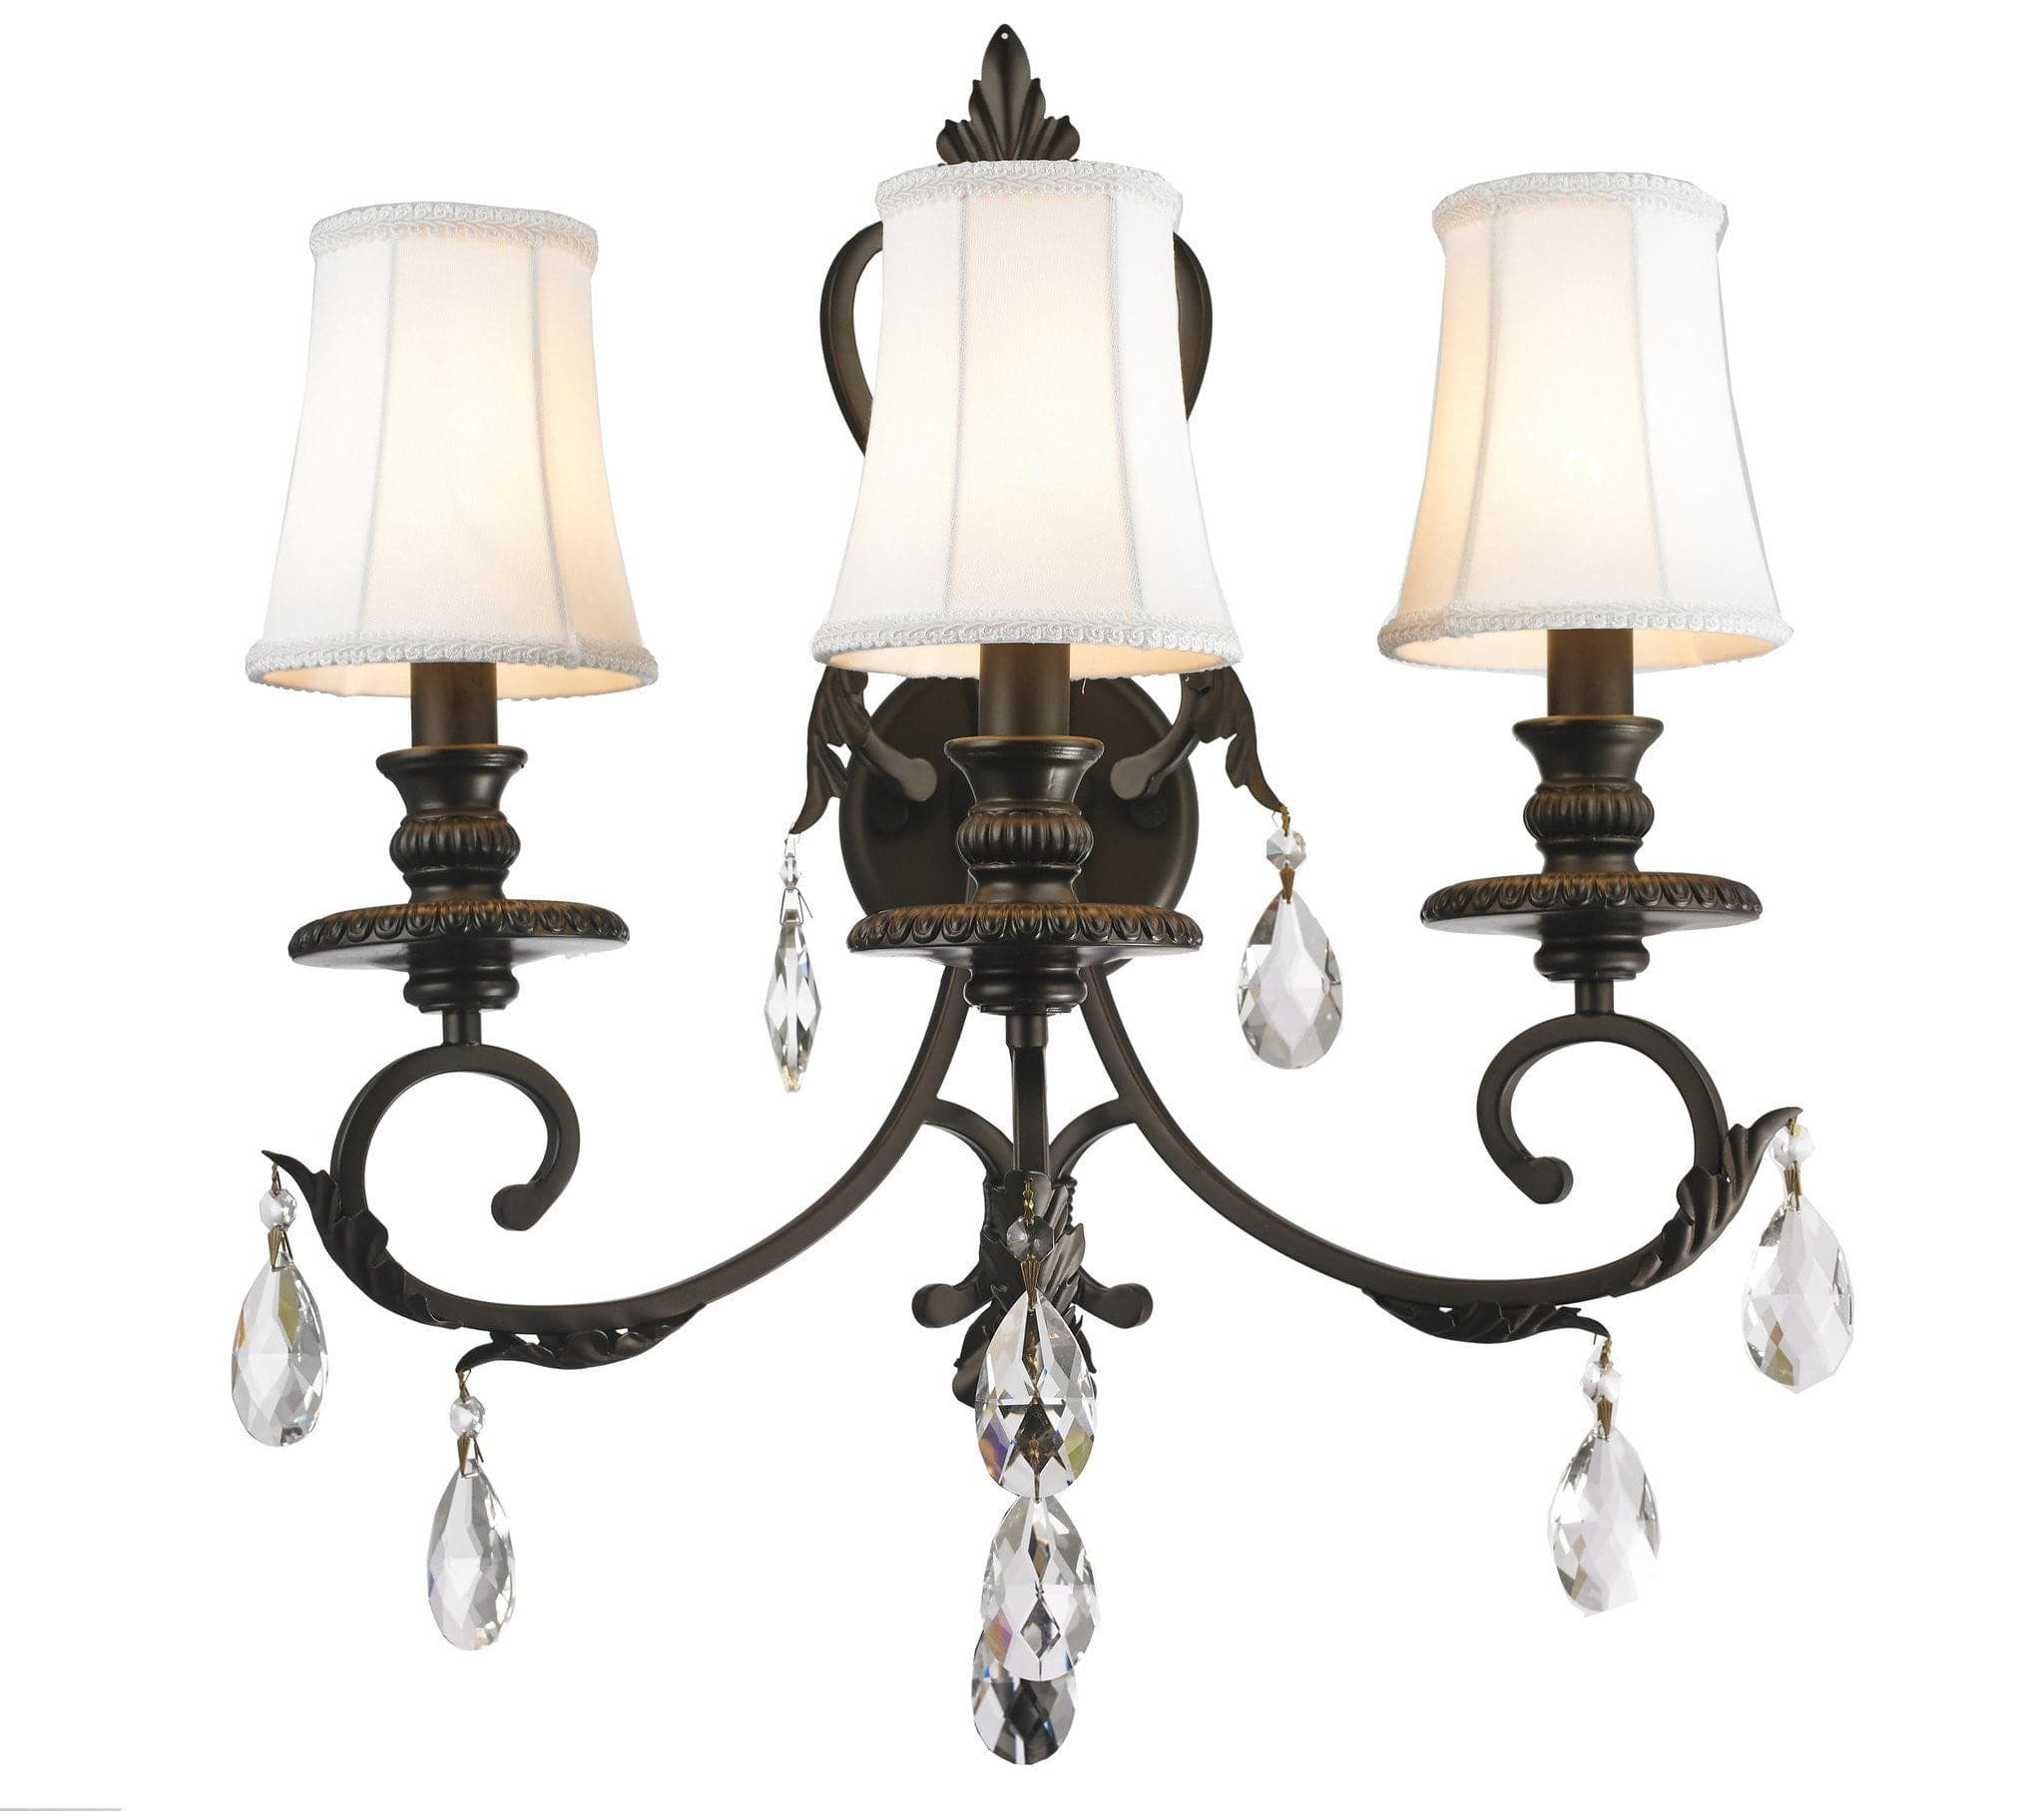 full size of polished trans chrome wall lighting light crystal chandelier sconces globe luxury versailles sconce